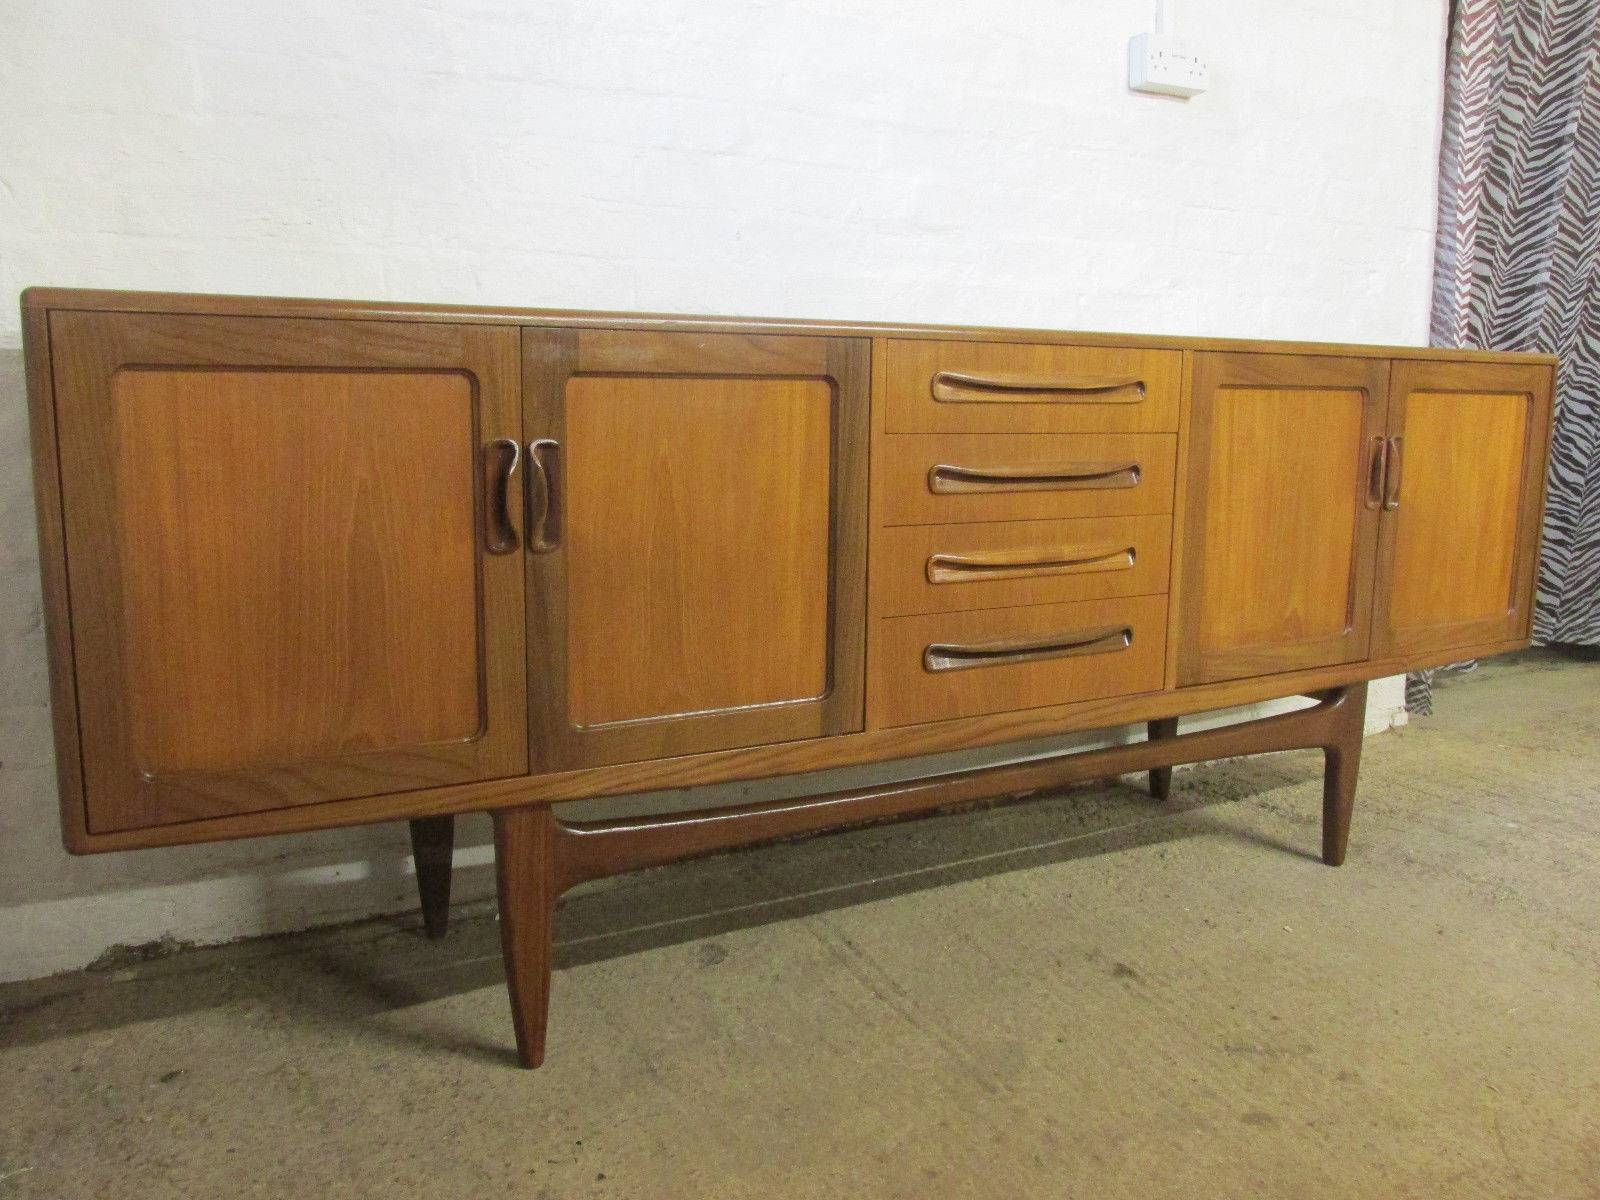 Retro 1960S/1970S G Plan Fresco 7 Ft Teak Sideboard With Cupboards With Regard To 7 Foot Sideboards (View 10 of 15)